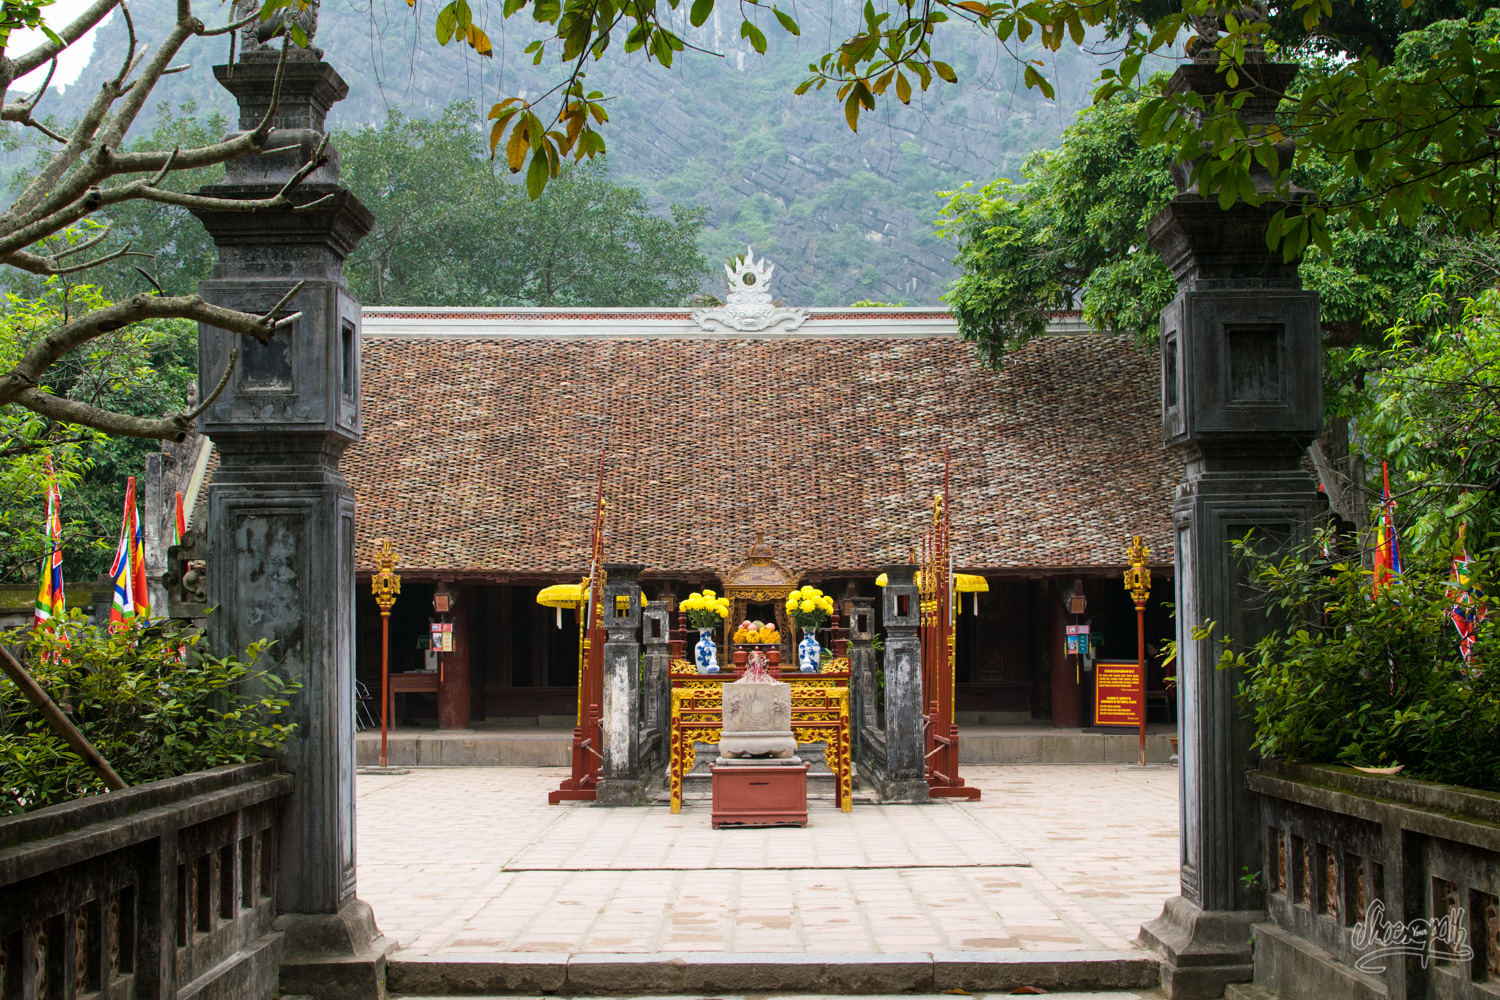 A temple in the old capital Hoa Lu